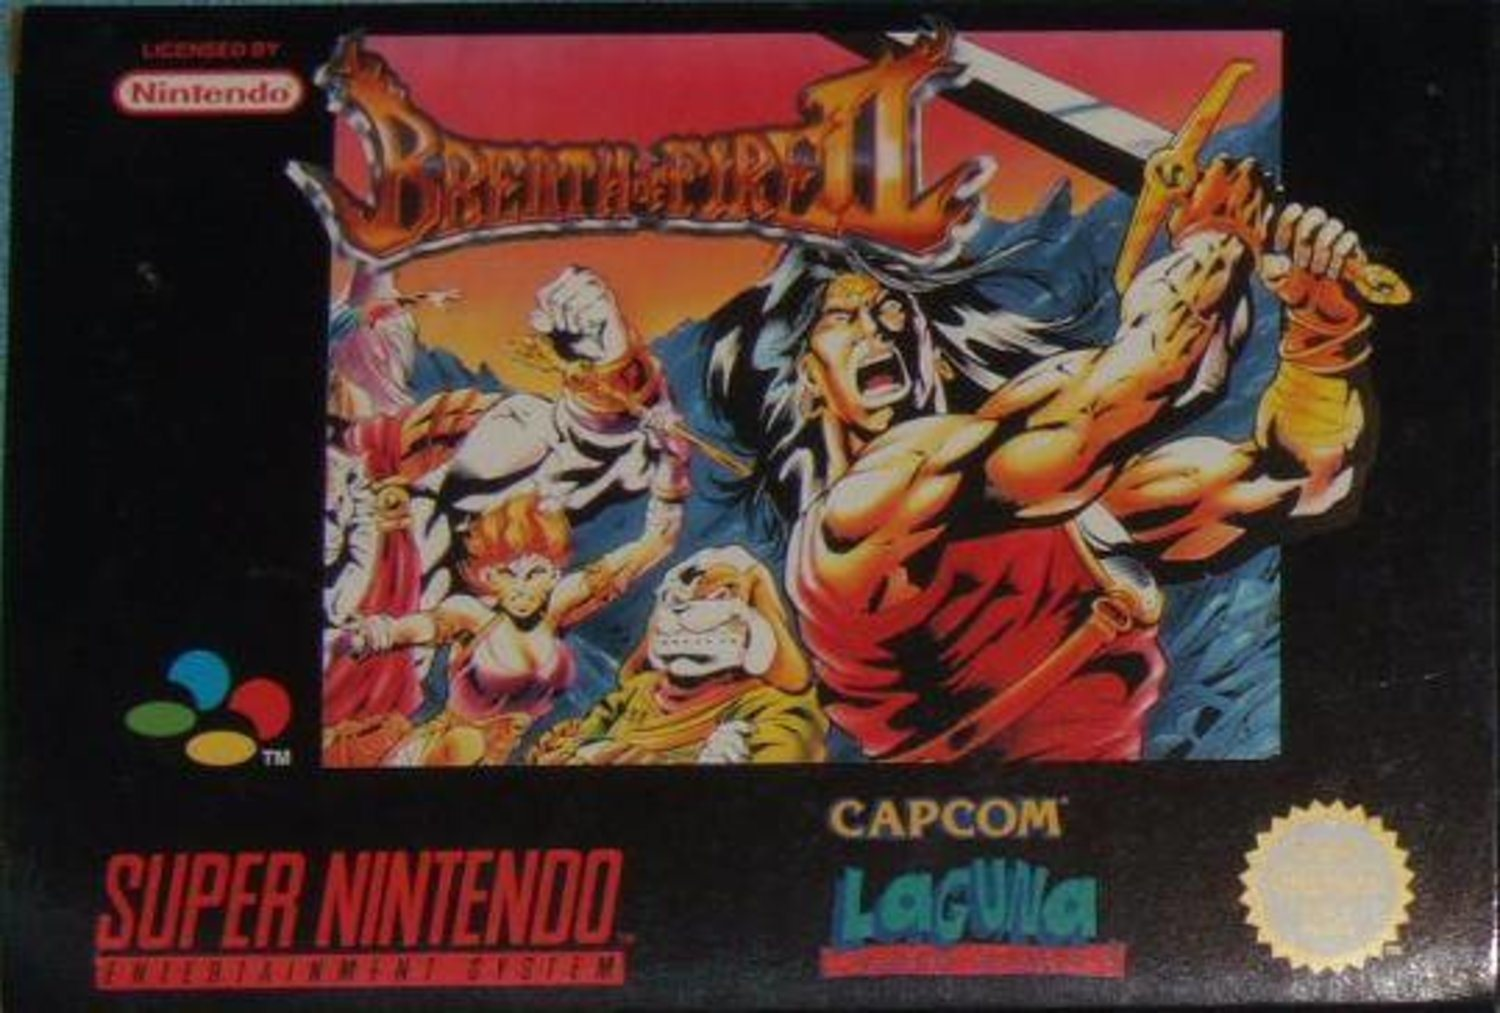 Breath of Fire 2 - Super Nintendo